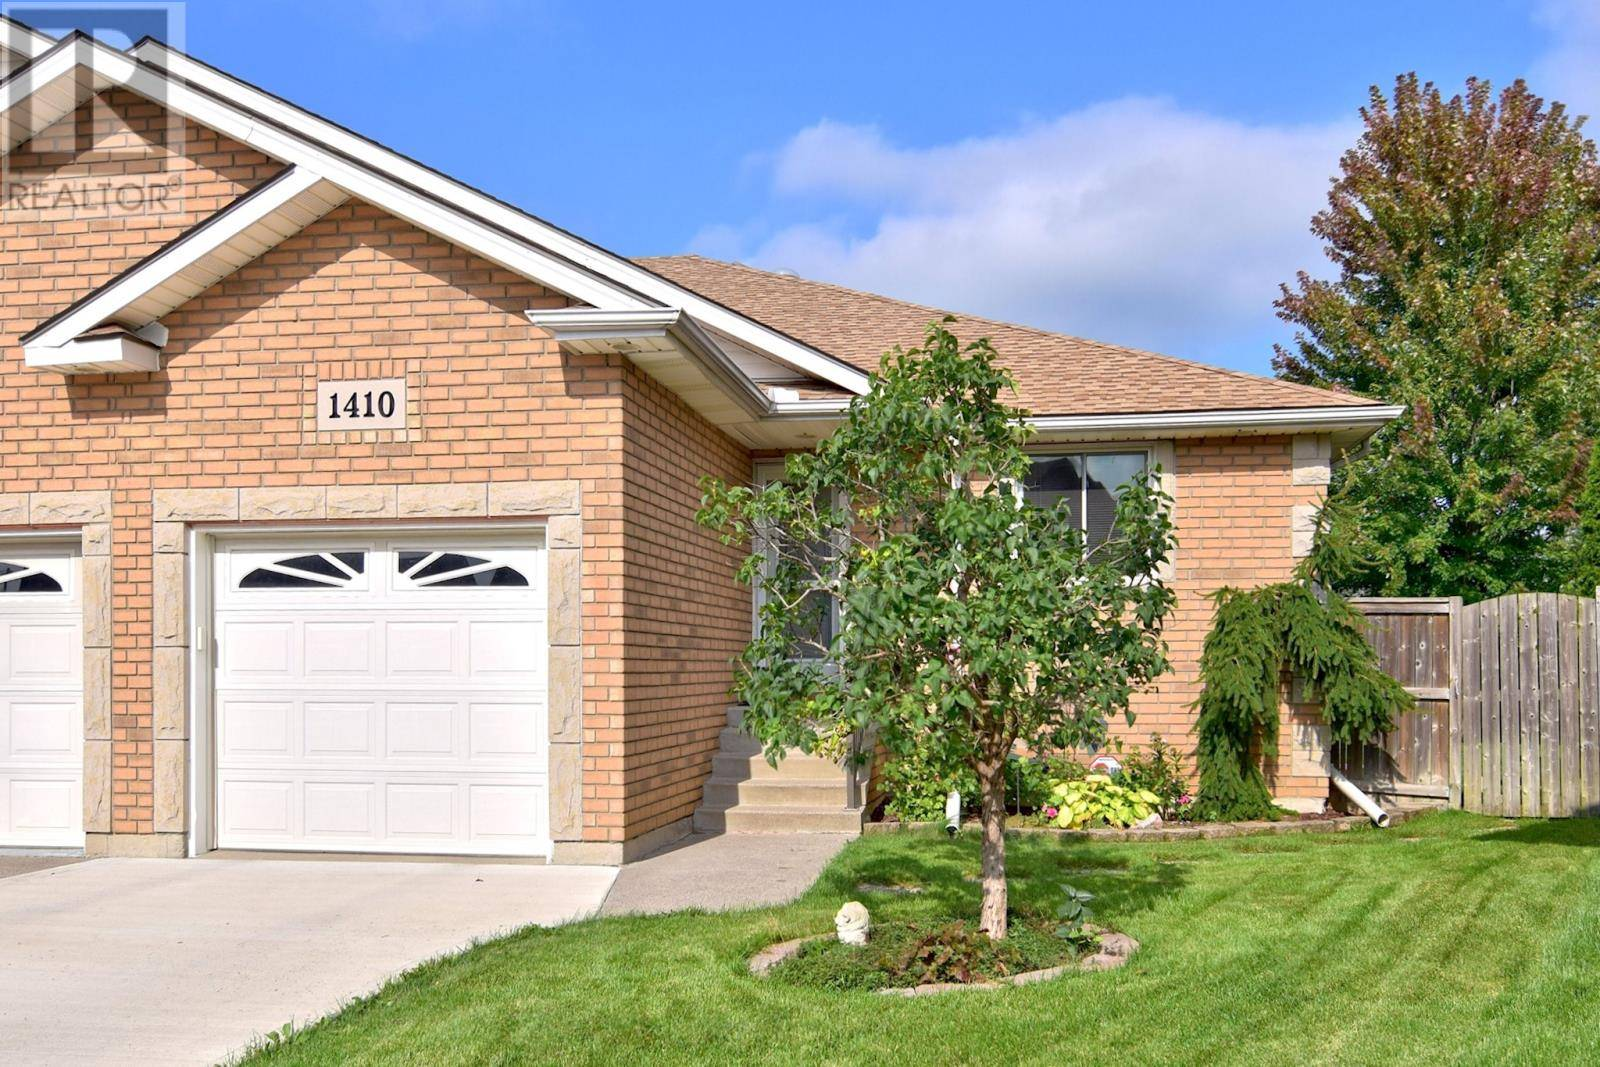 House for sale at 1410 Champ Cres Tecumseh Ontario - MLS: 19026254